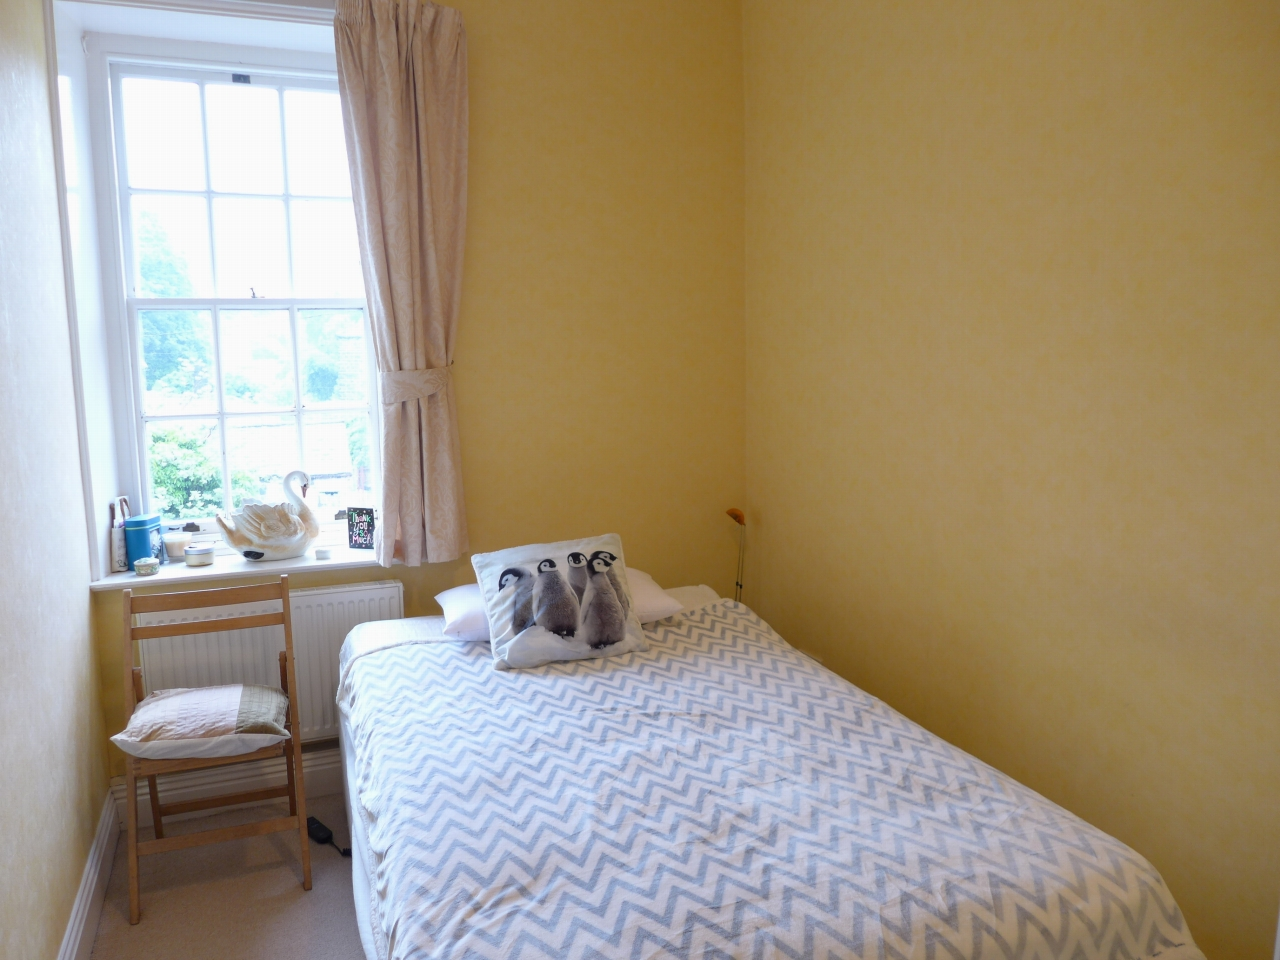 3 bedroom end terraced house For Sale in Calderdale - Photograph 9.